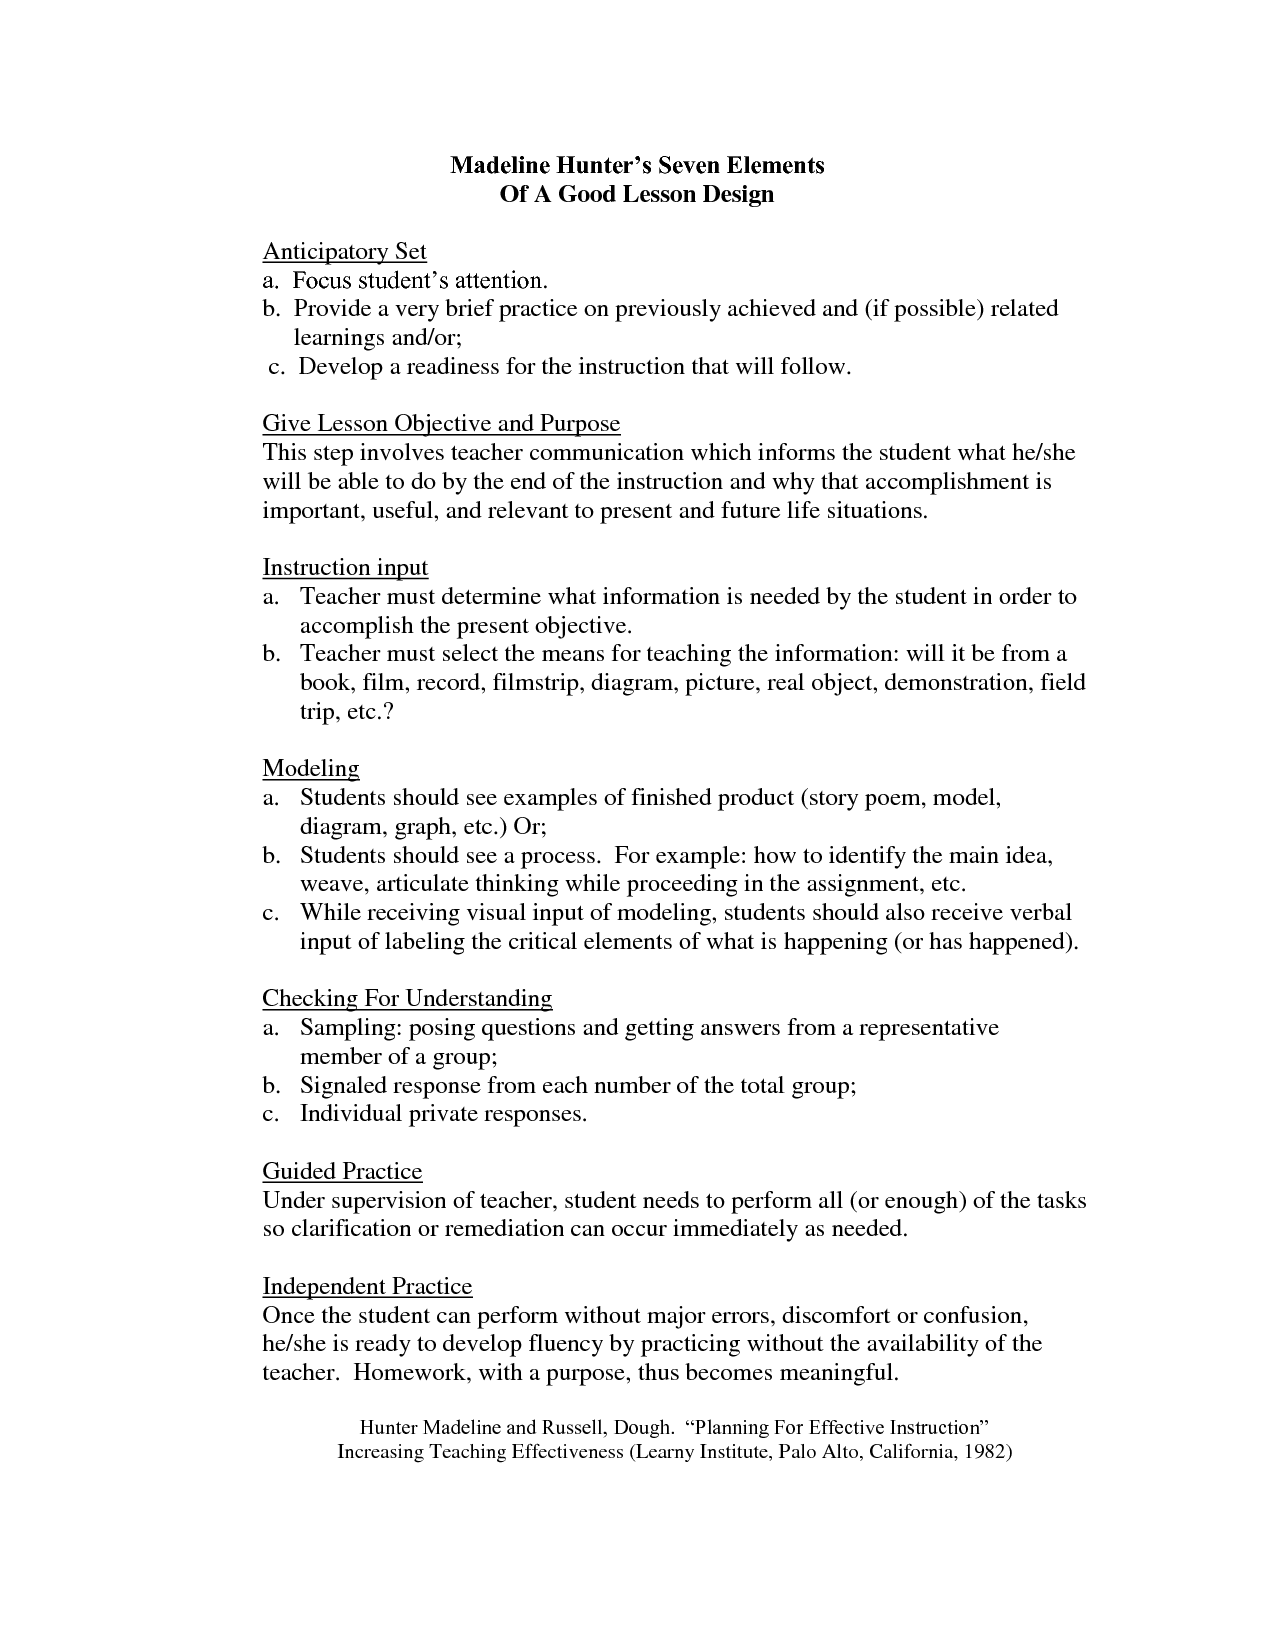 Madeline Hunter Lesson Plan Format Template Google Search Th - Fresh madeline hunter lesson plan template concept